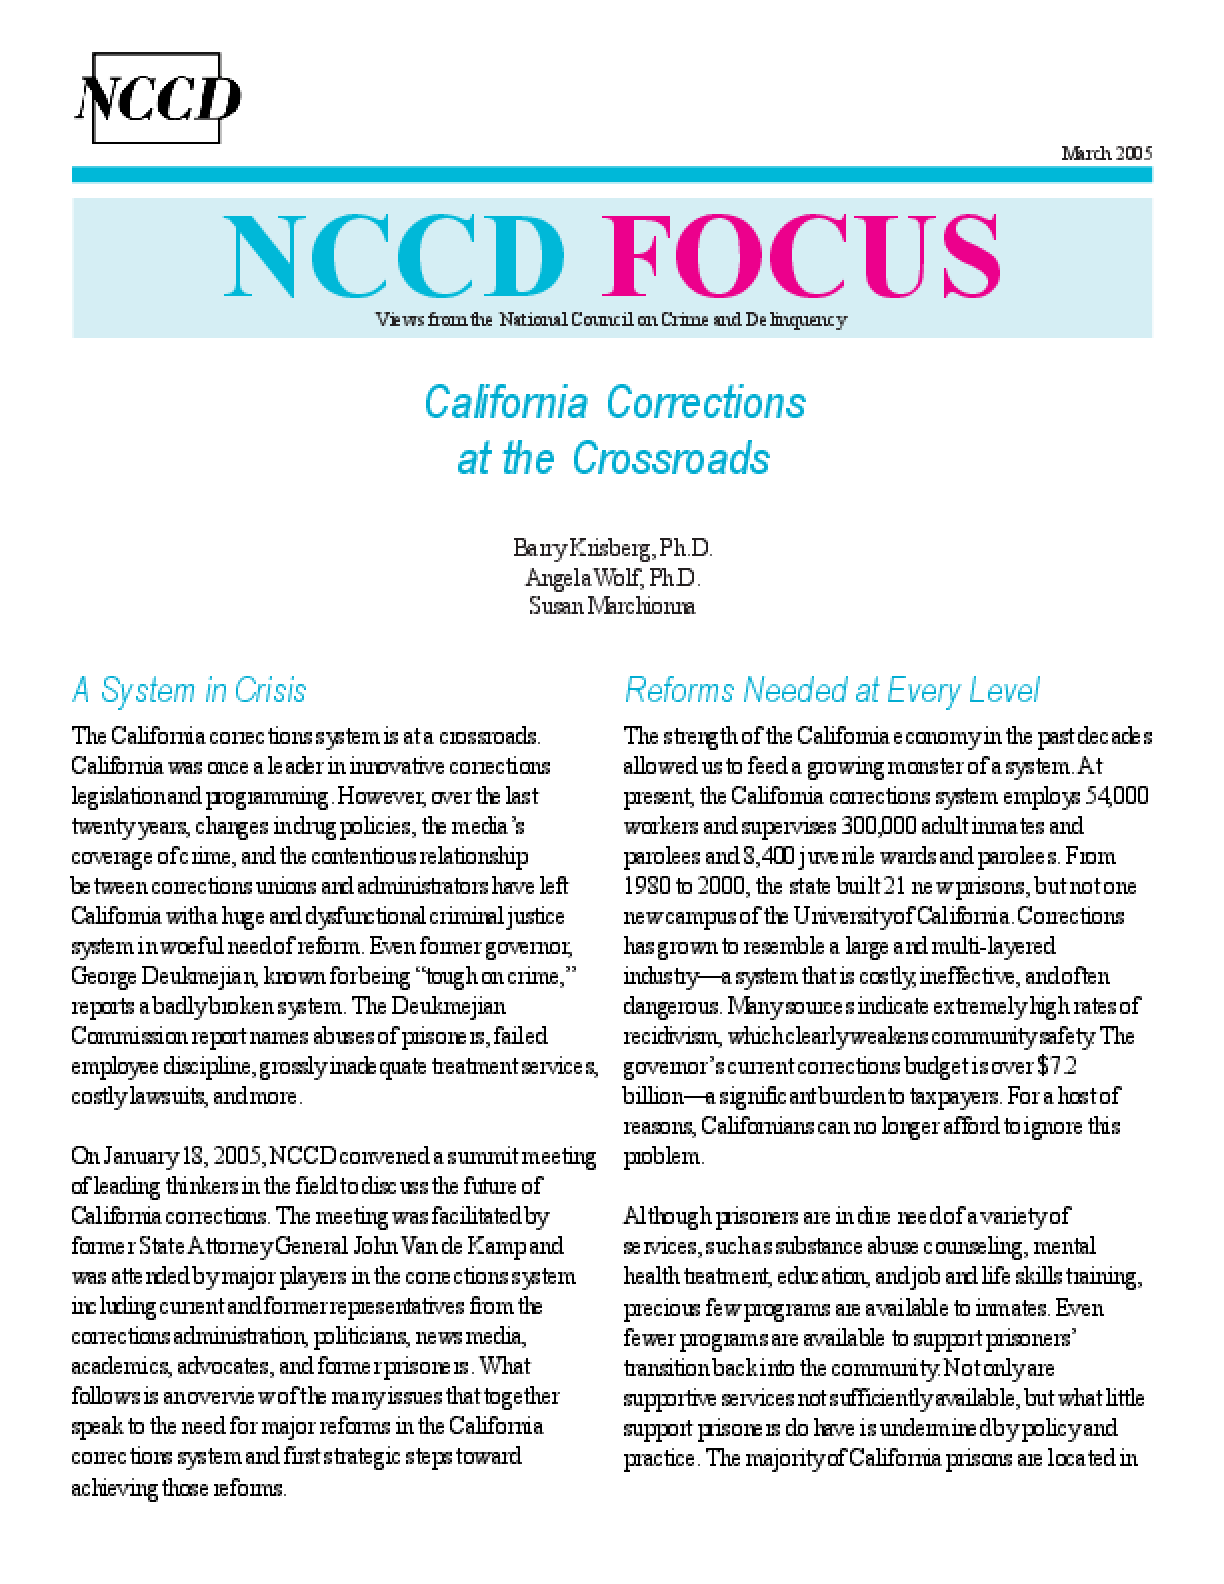 California Corrections at the Crossroads (FOCUS)